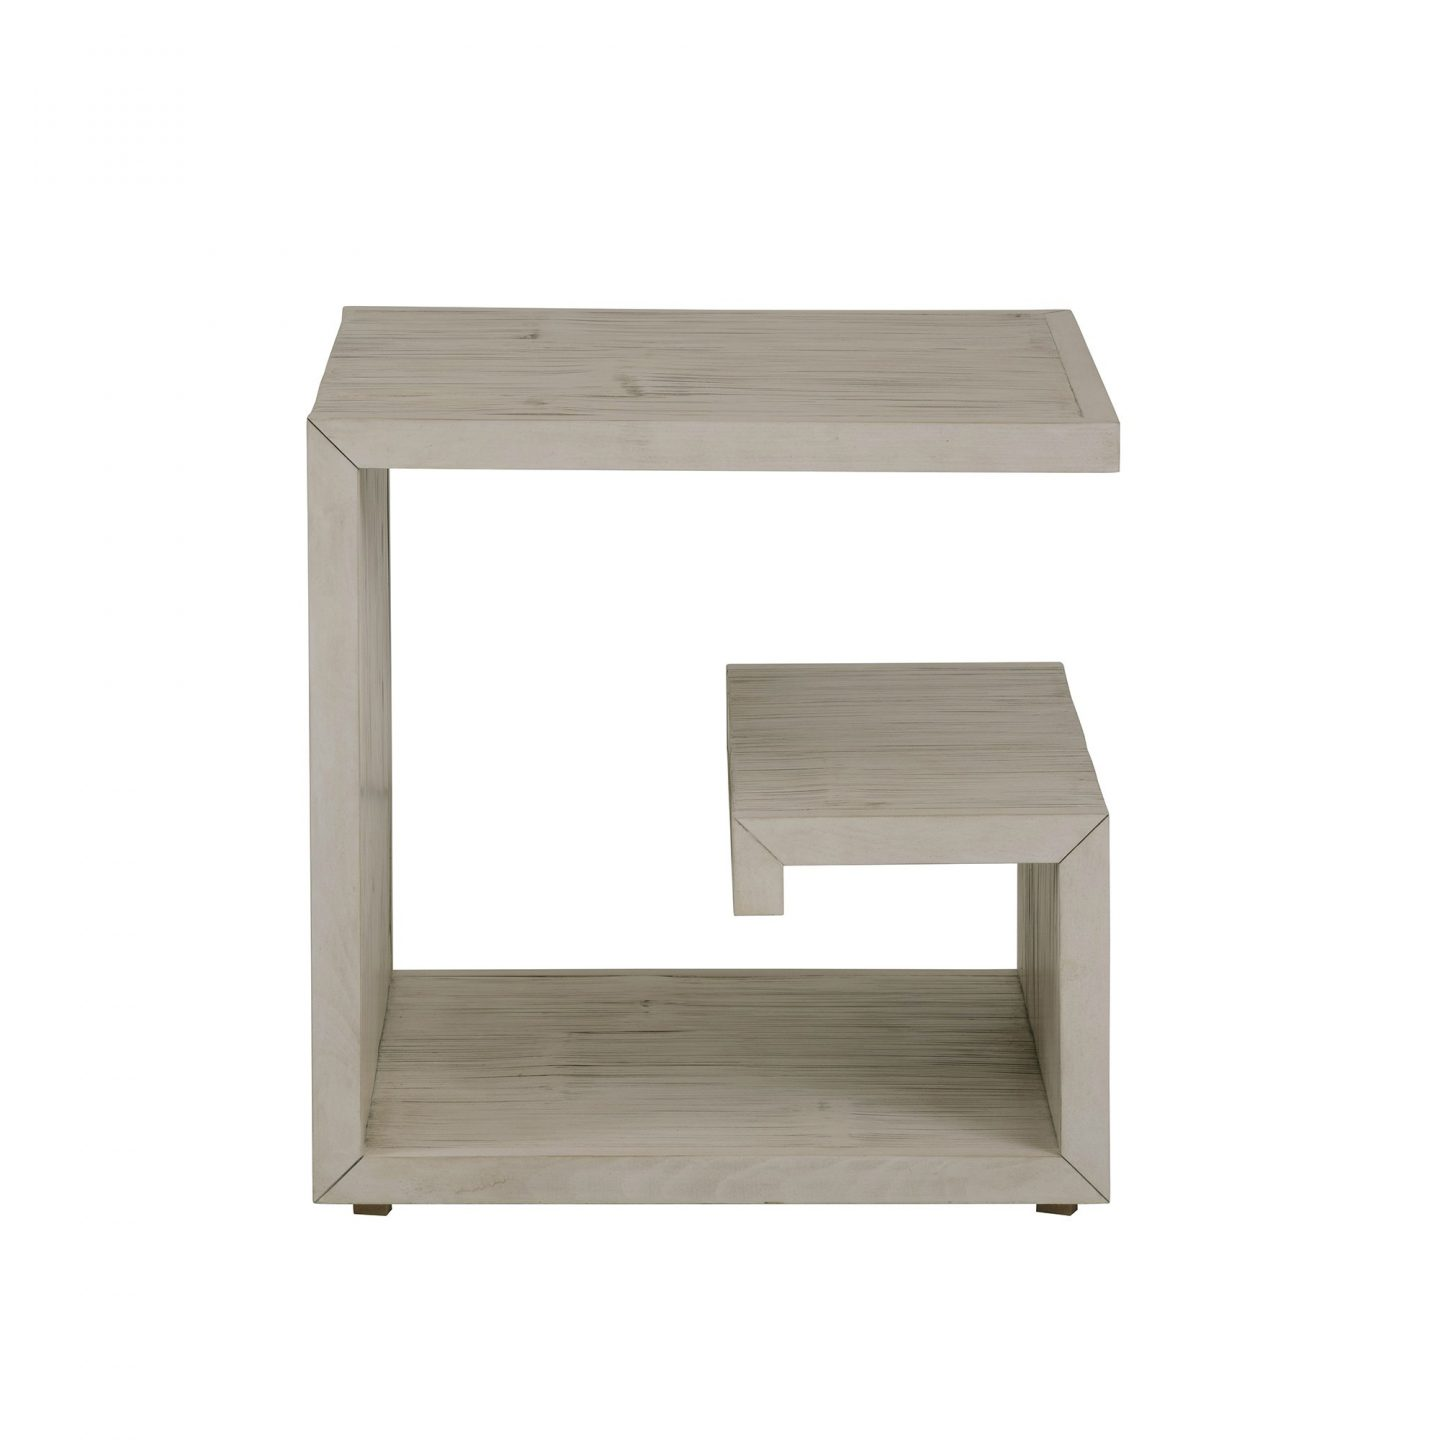 Bamboo Greek Key Buncher - Curate Home Collection